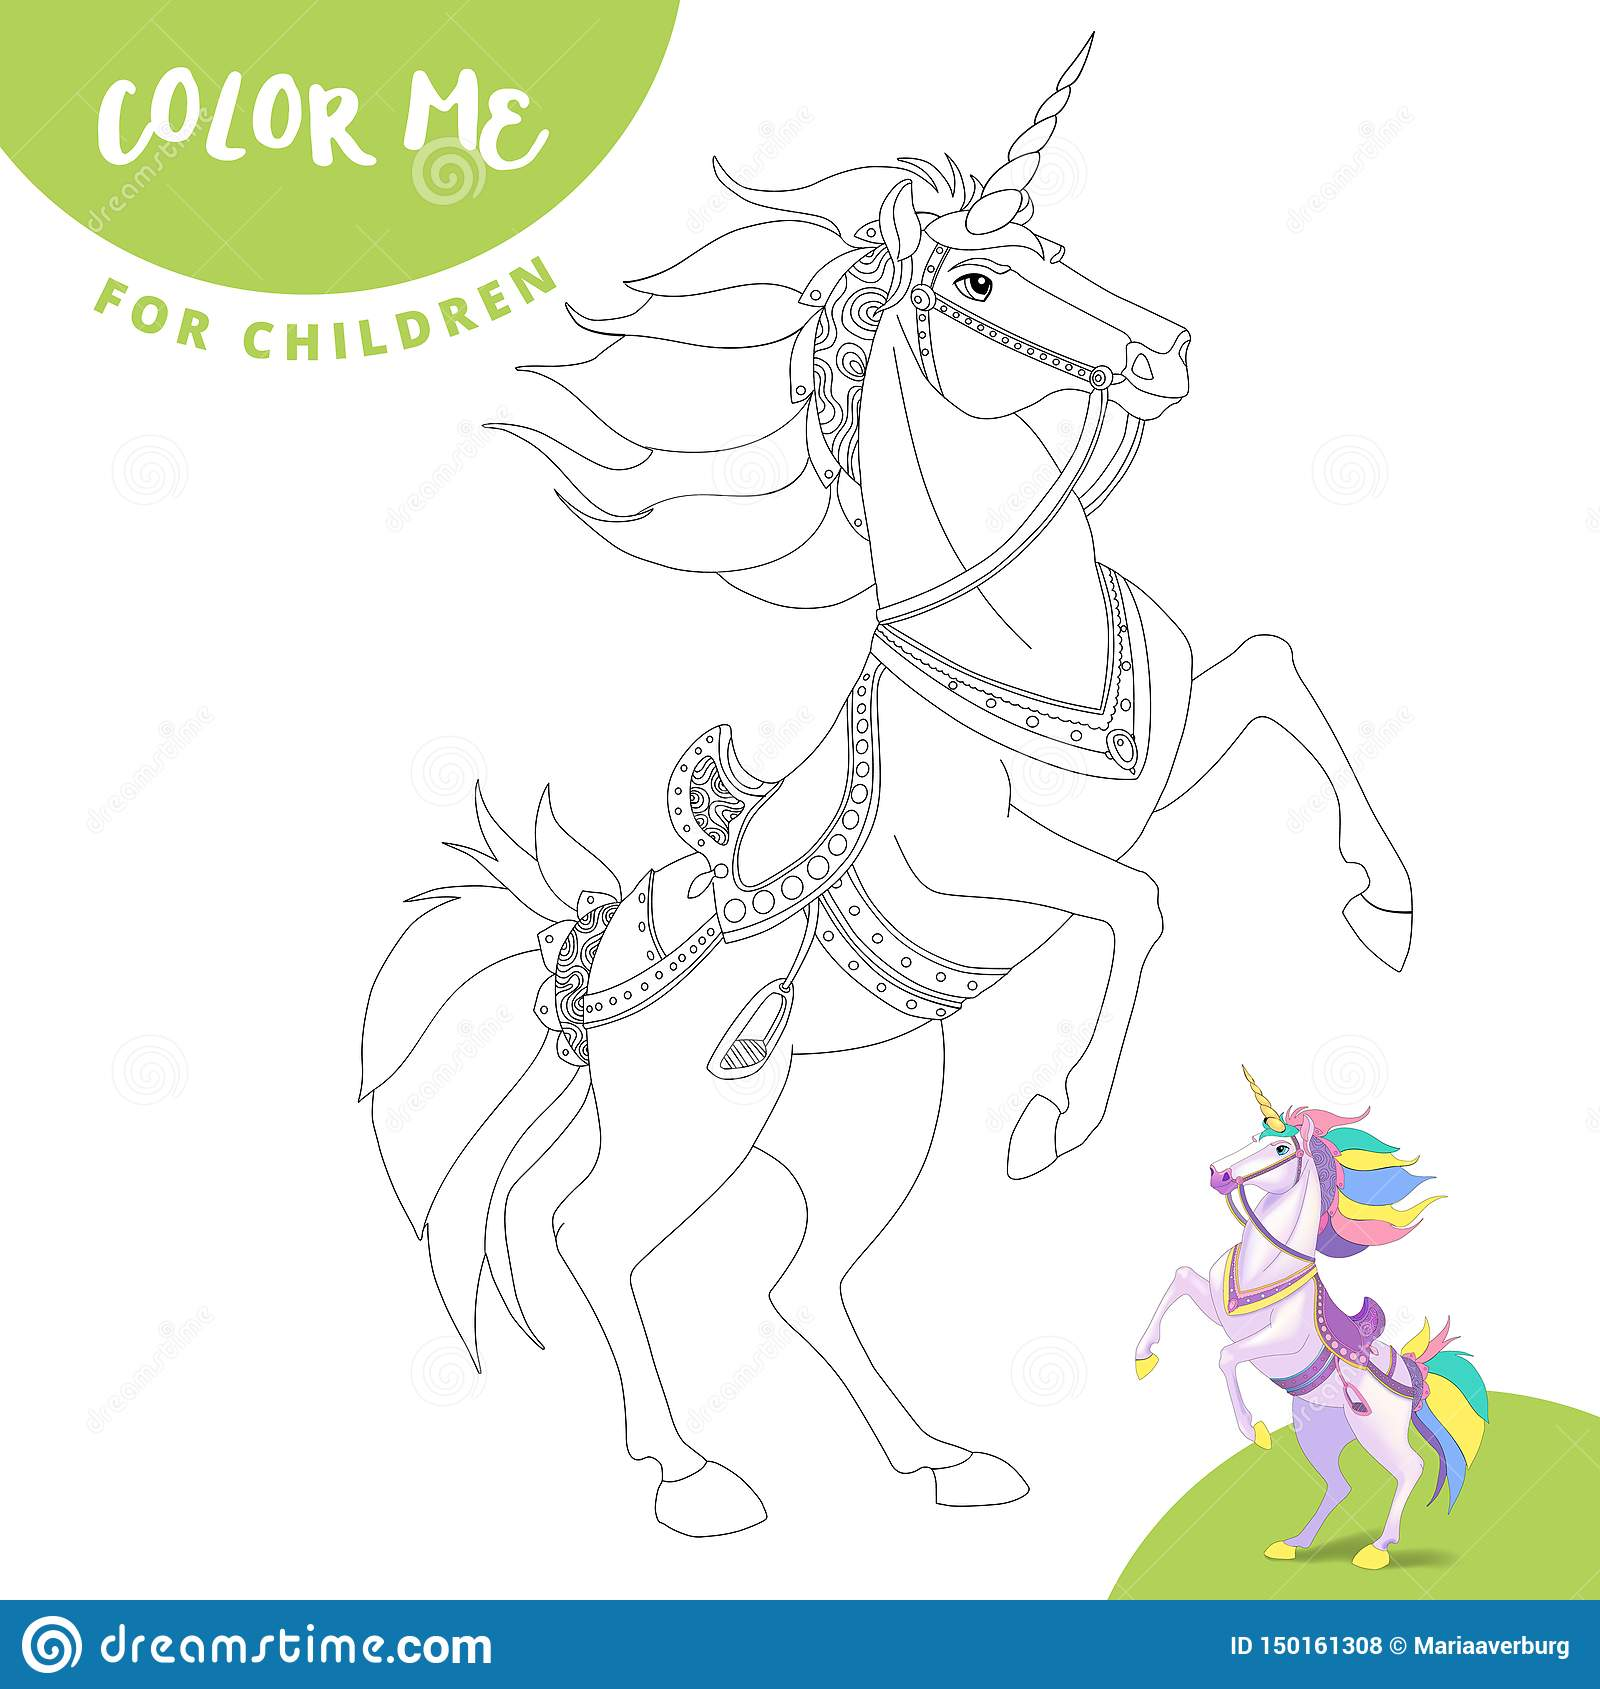 coloring pages : Simple Coloring Pages For Kindergarten Best Of 22 ... | 1689x1600